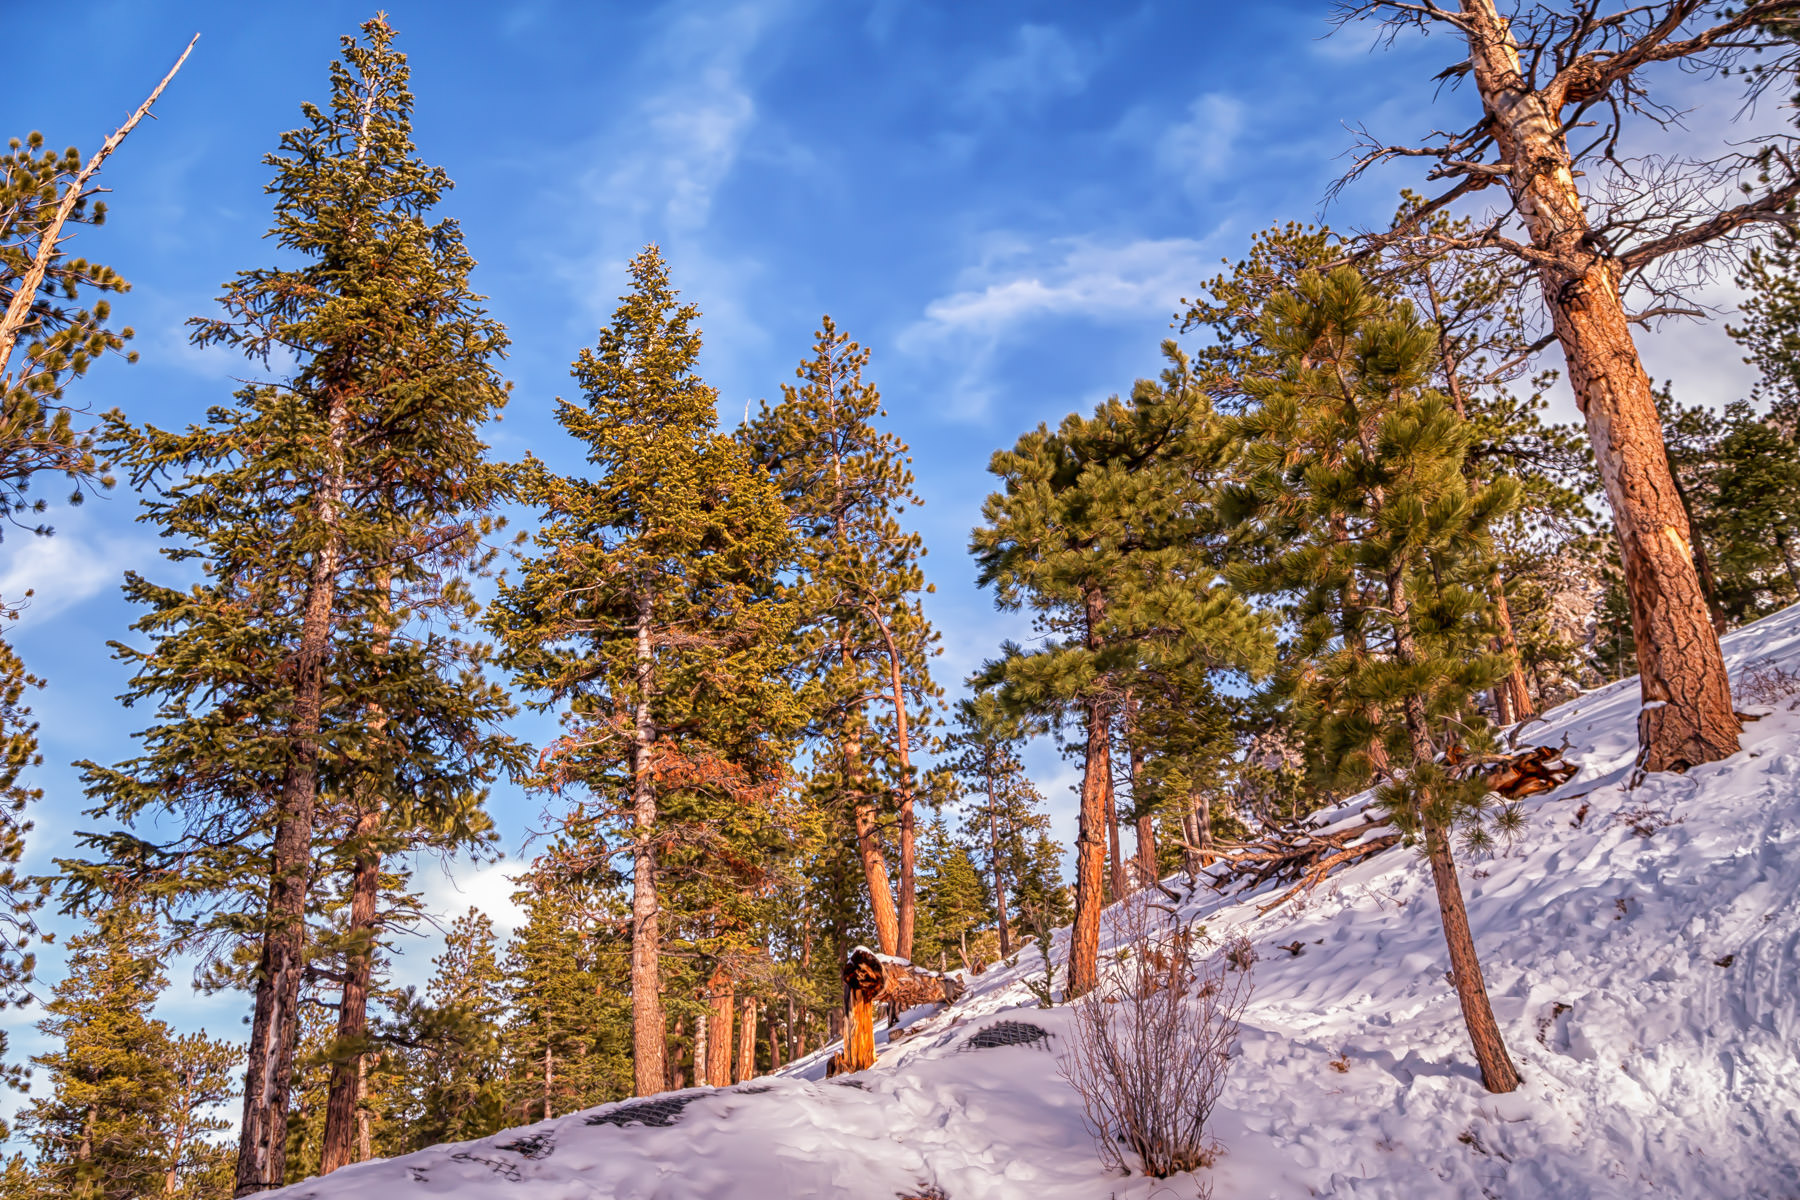 Winter snows cover the ground in the foothills of Nevada's Mount Charleston.